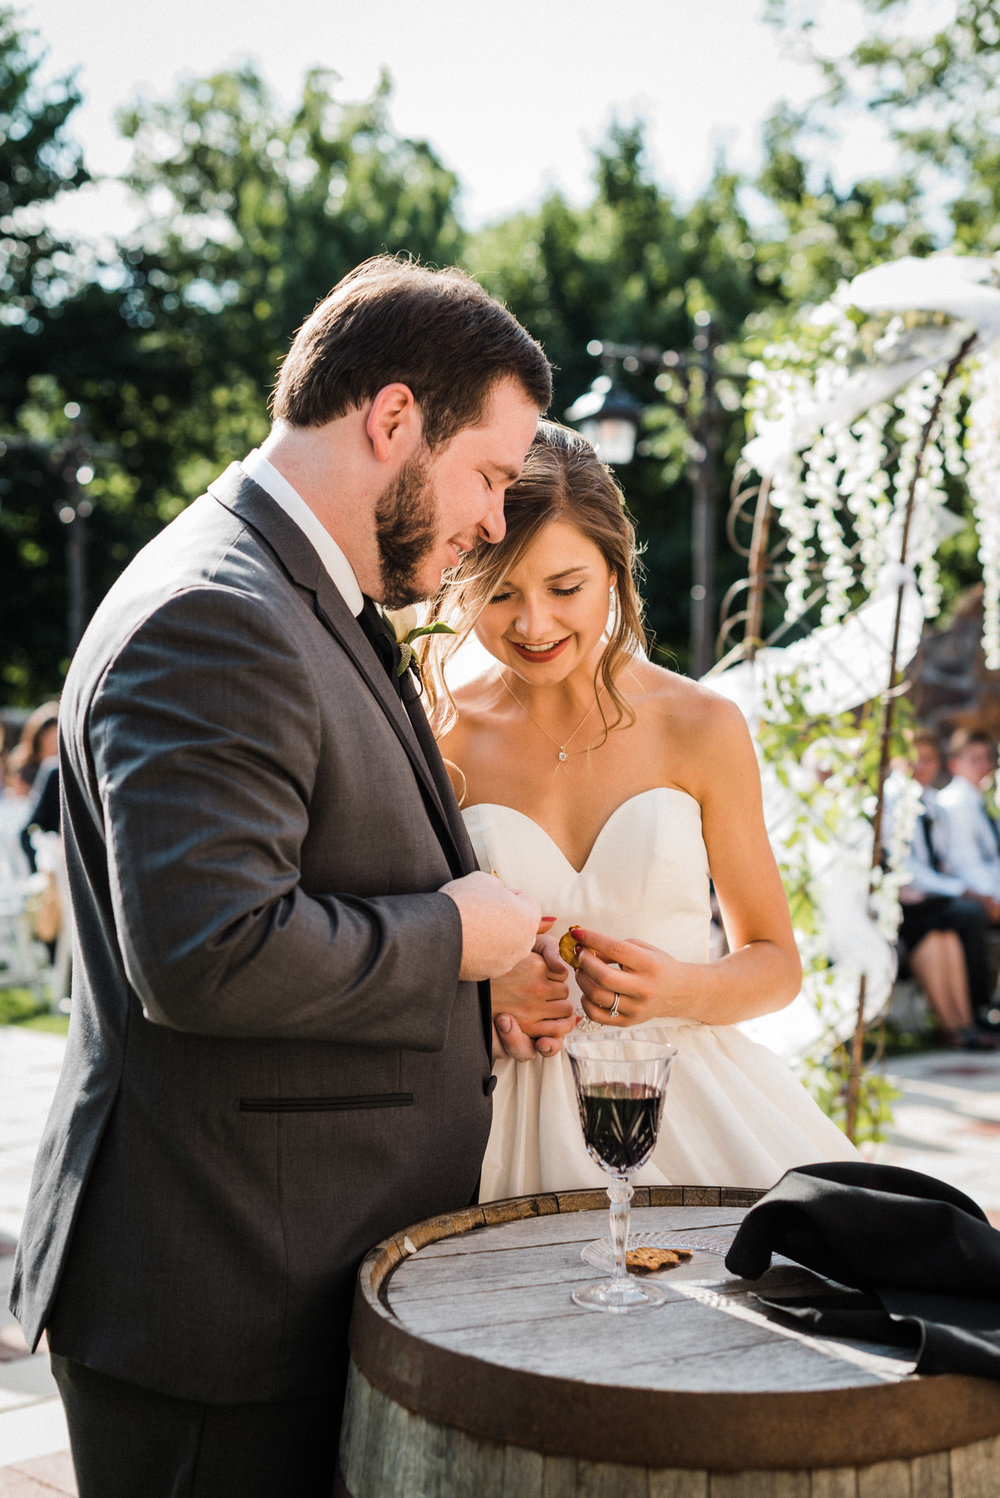 Megan & Blake Communion at Sassafras Springs Vineyards Wedding - Tanner Burge Photography.jpg